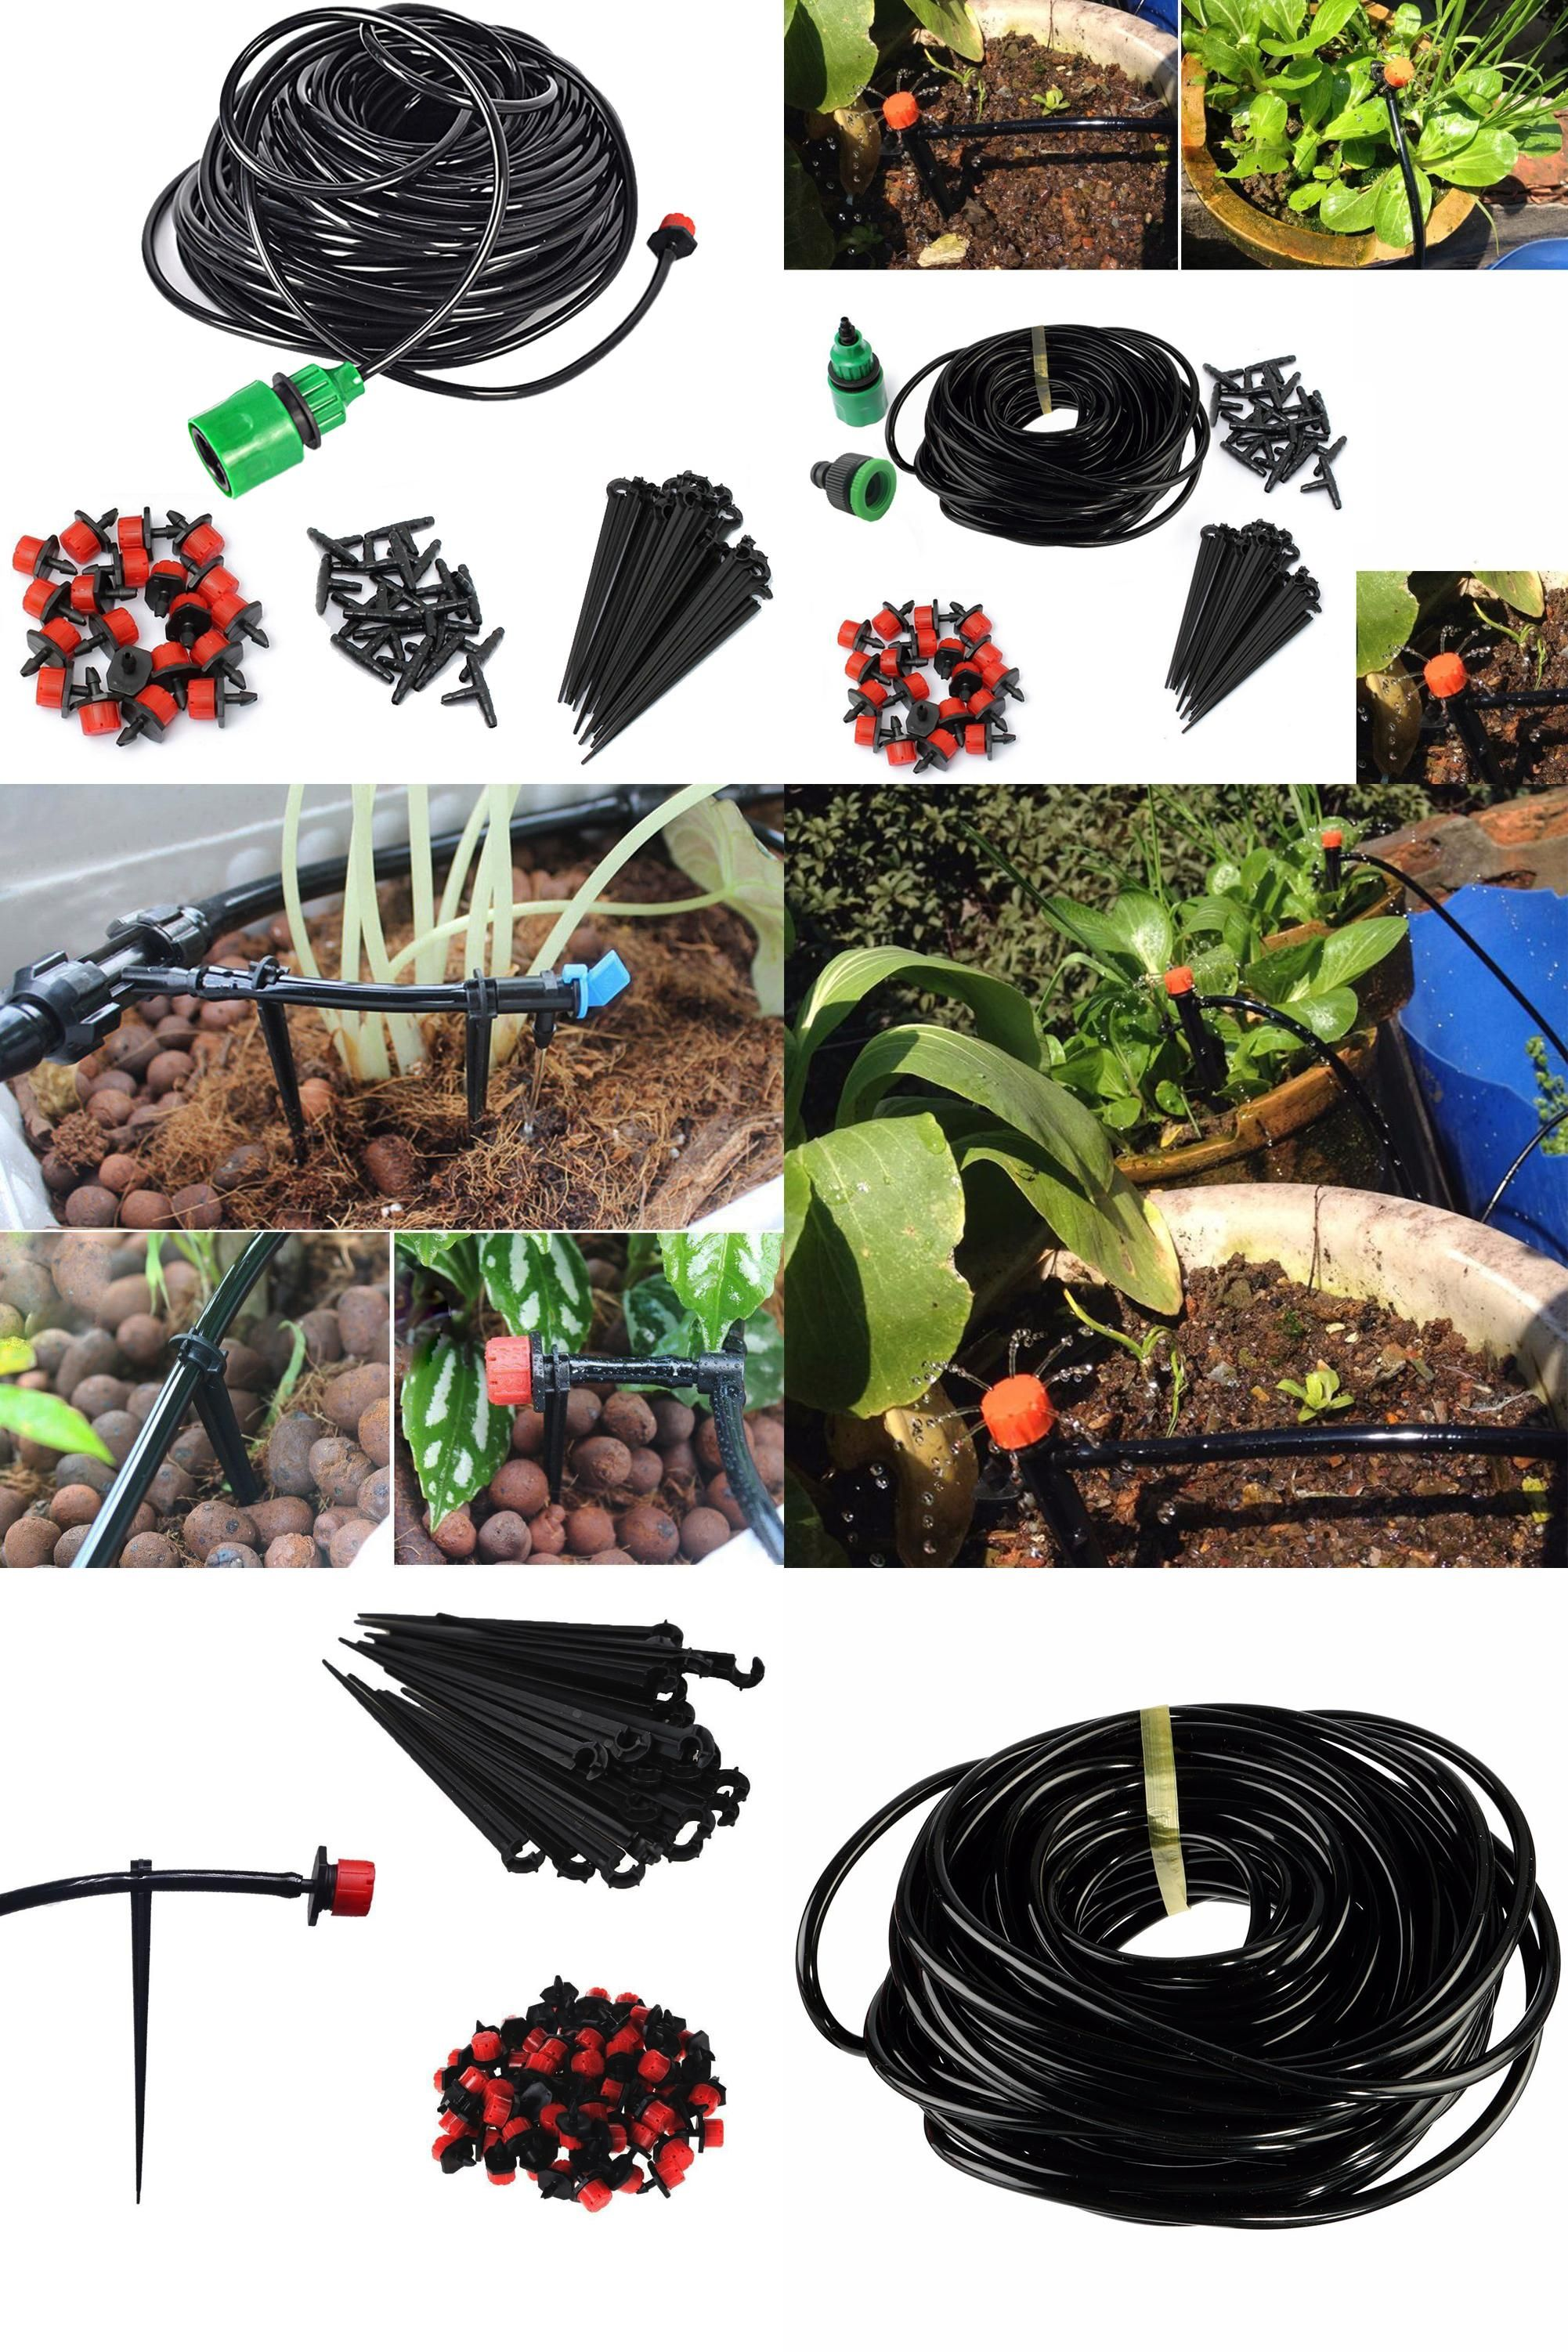 Visit To Buy 5m Micro Drip Irrigation Kit Set Plants Watering System Automatic Plant Garden Ho Garden Watering System Drip Irrigation Diy Drip Irrigation Kit